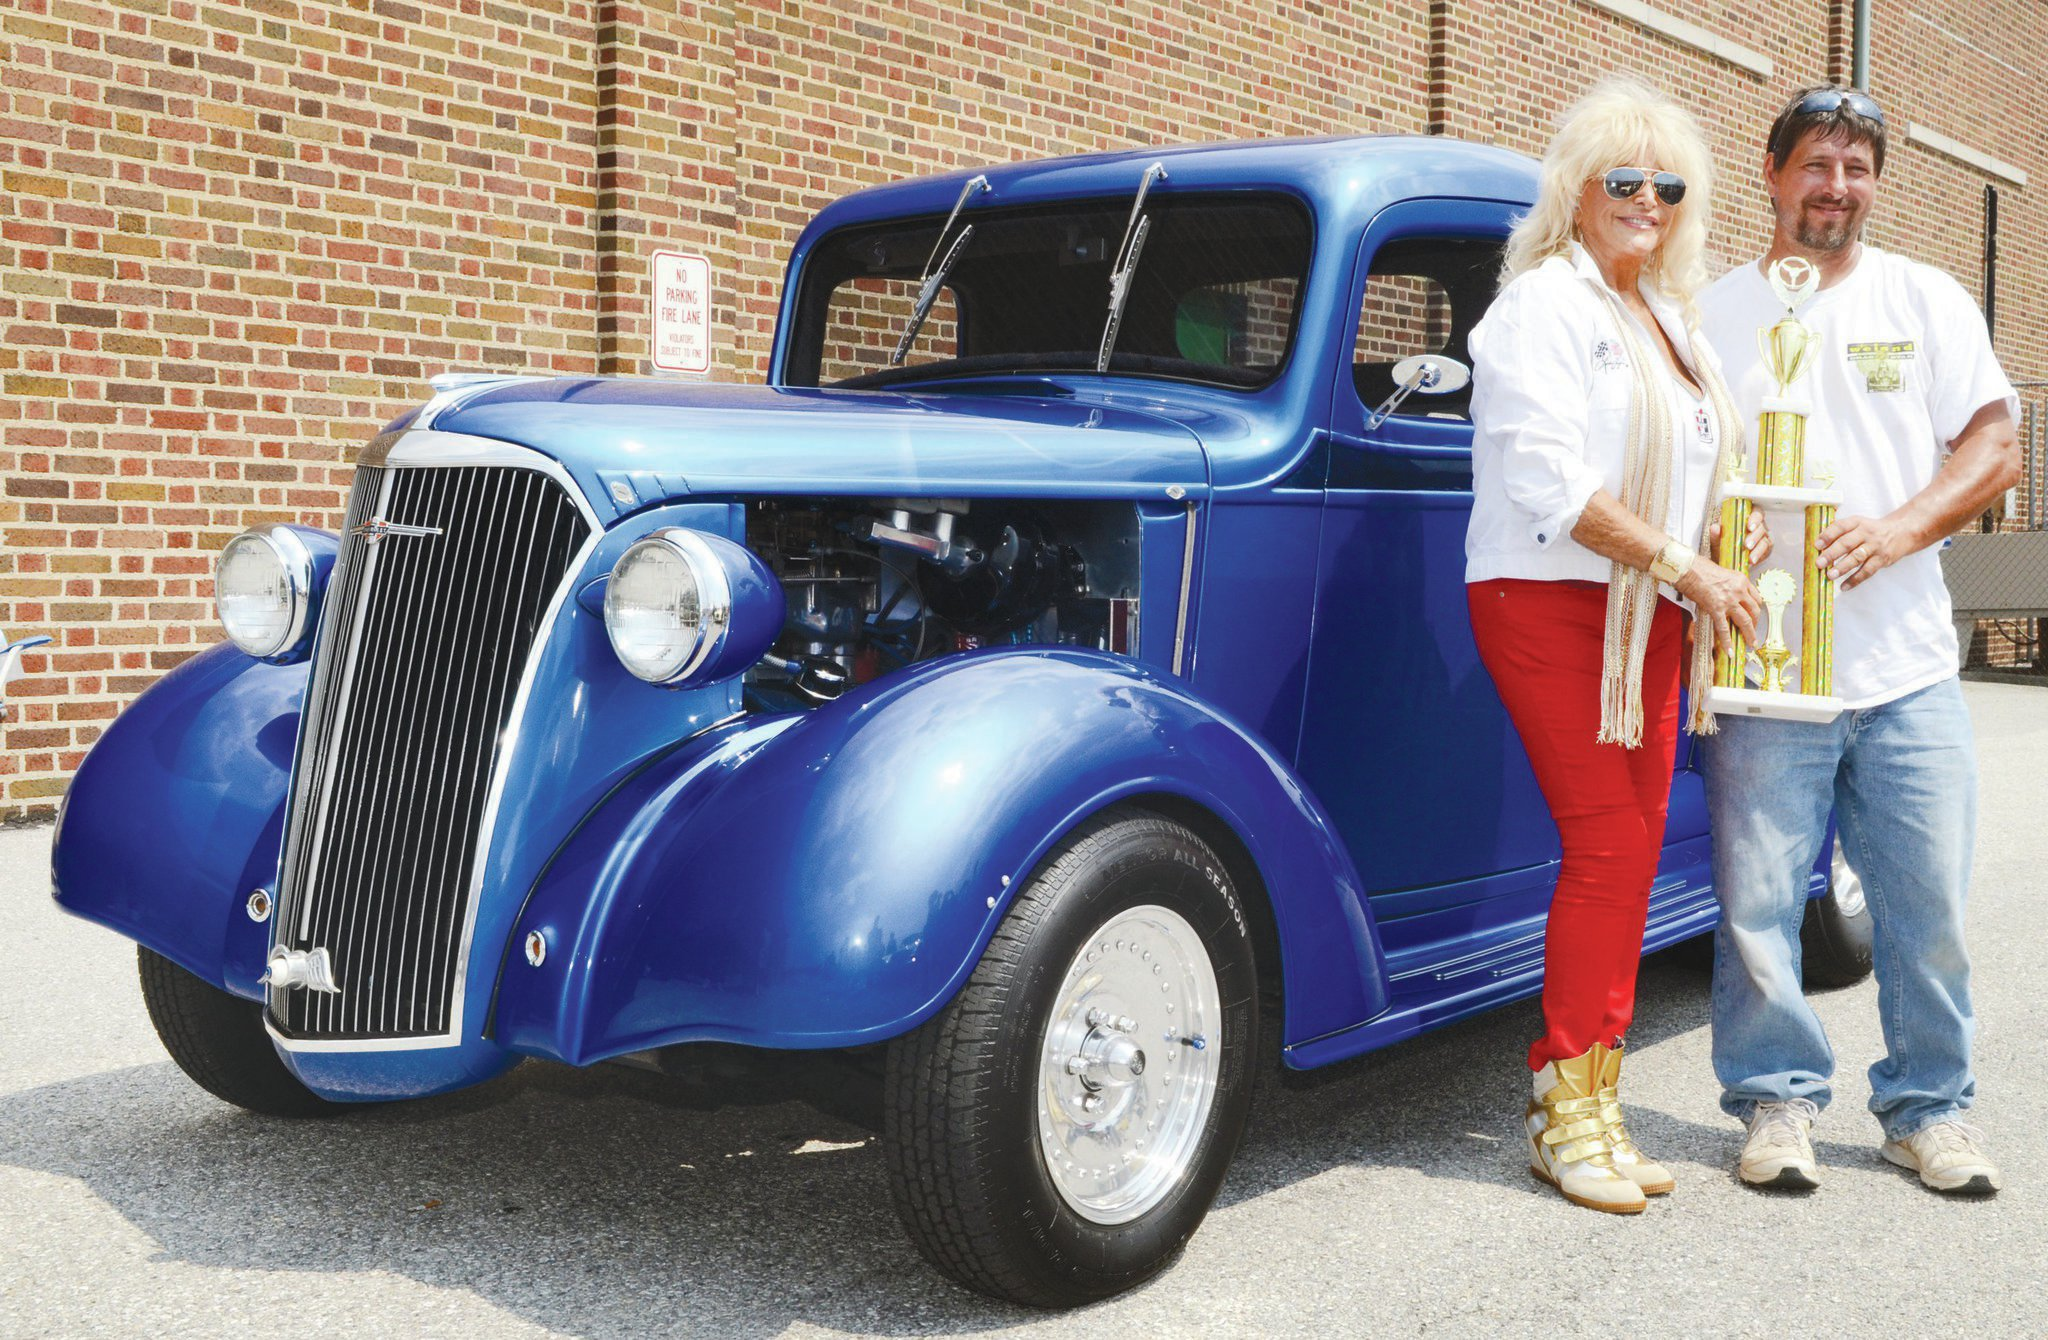 Part of Saturday's event is the Cruisin' Into Summer car show, which added another couple hundred vehicles to the invited entries already arranged indoors. After judging, Linda Vaughn was on hand to give awards to the winners.